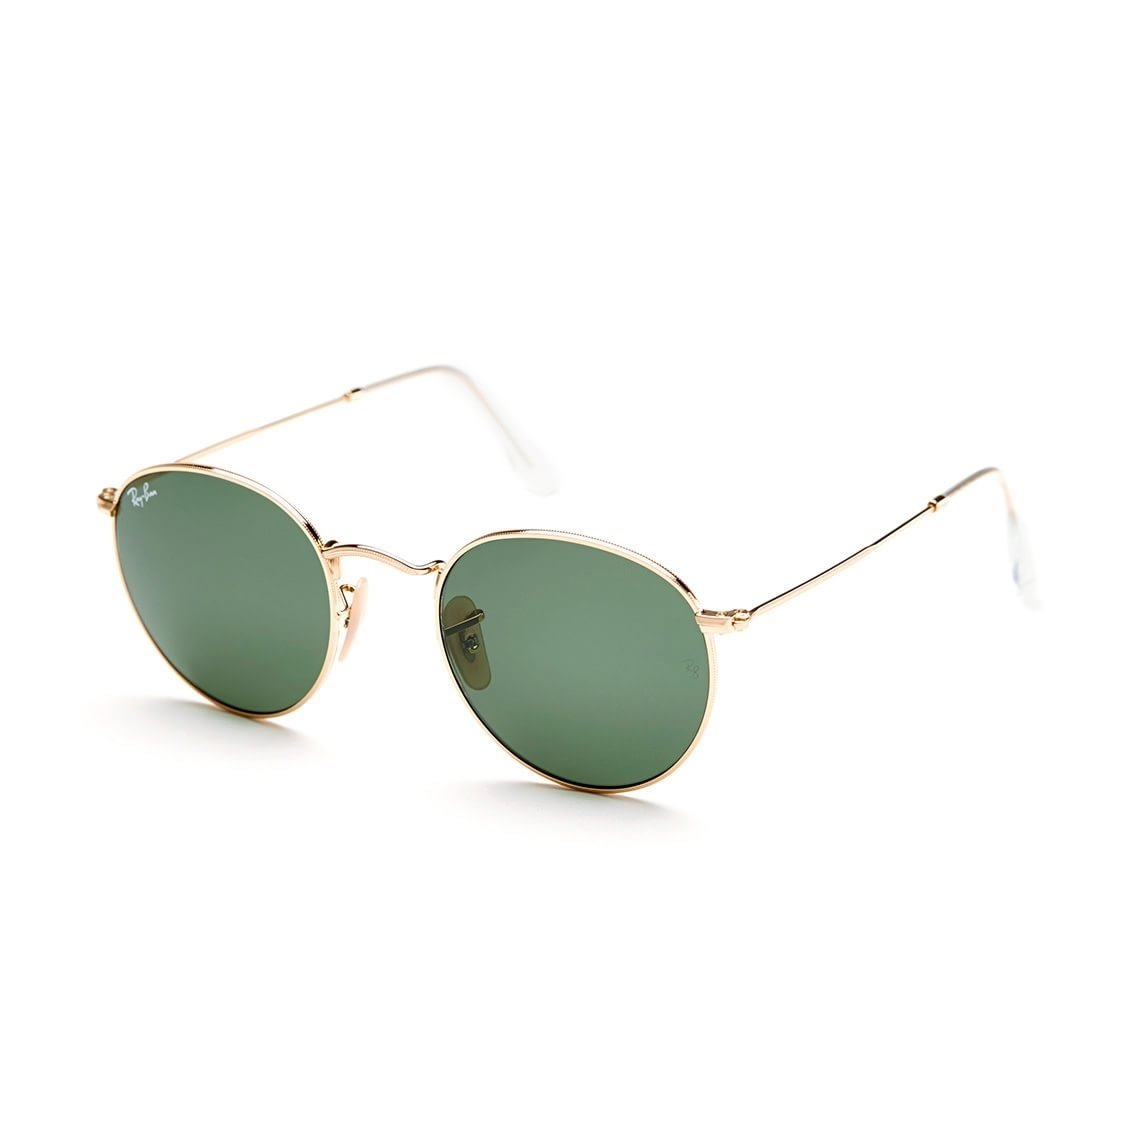 940f3b2b7d4e Ray-Ban Round metal RB3447 001 53 - Profil Optik